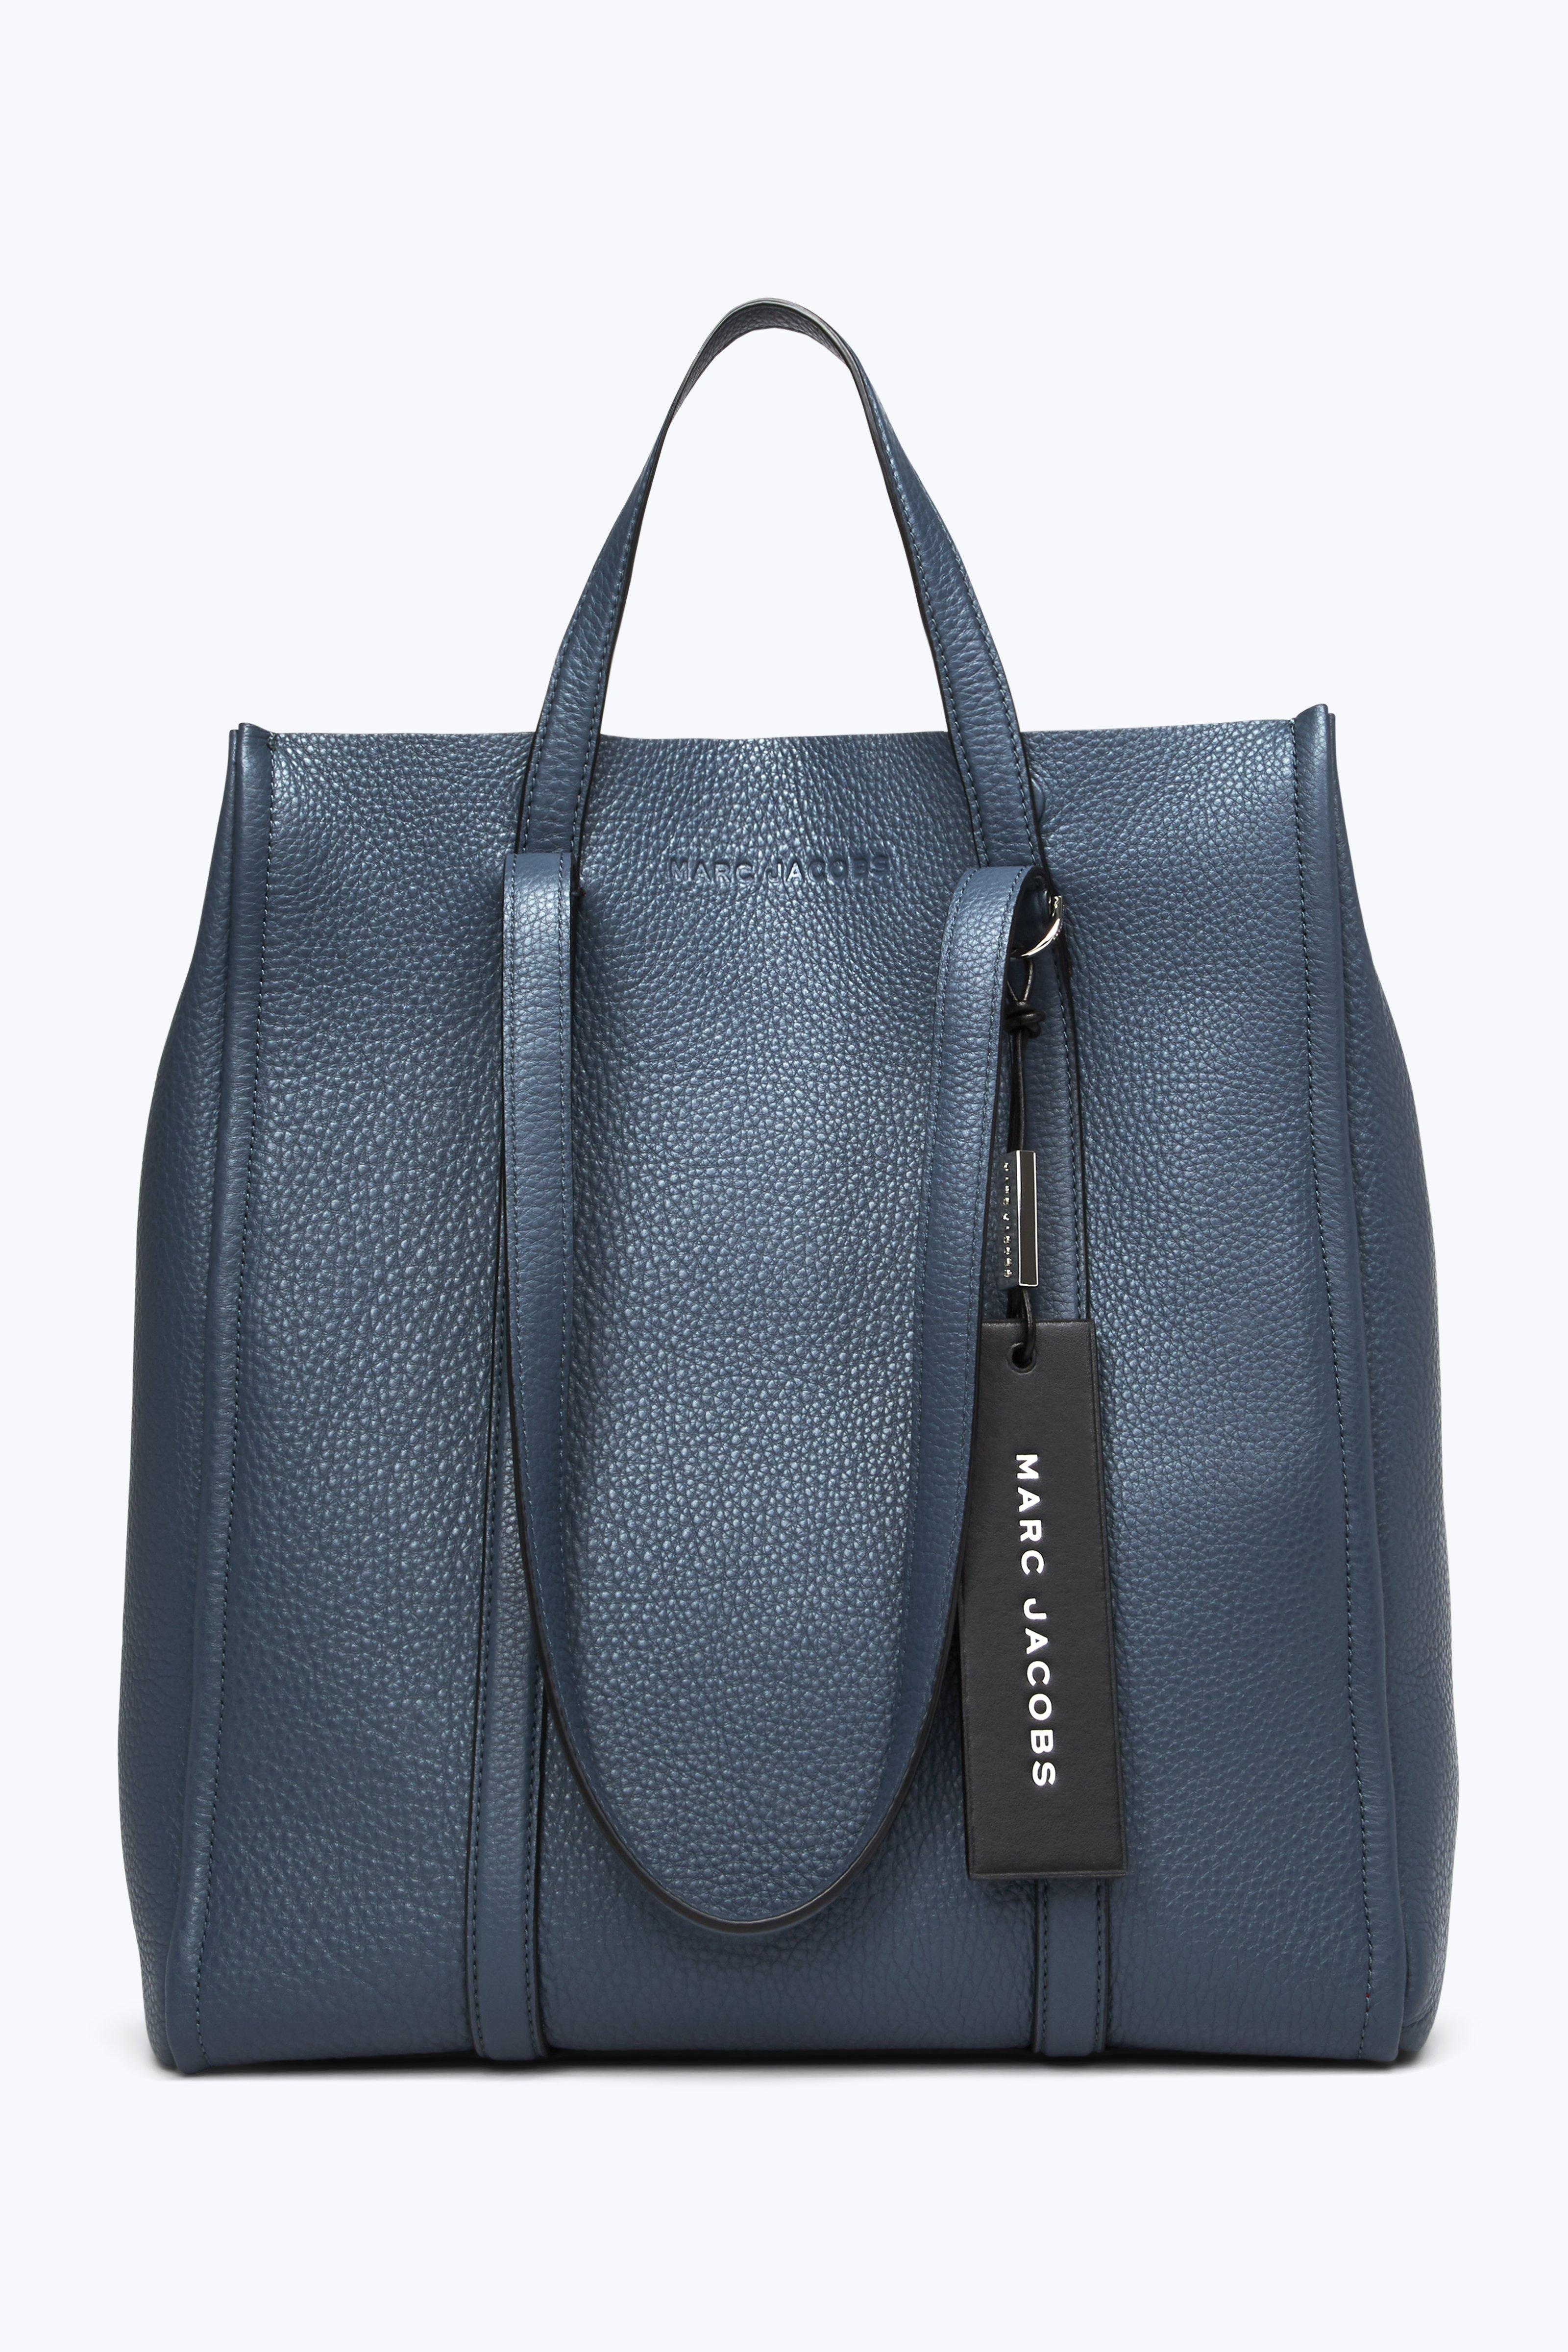 478f4b484f79 Marc Jacobs The Oversized Tag Tote In Nightshade Grey